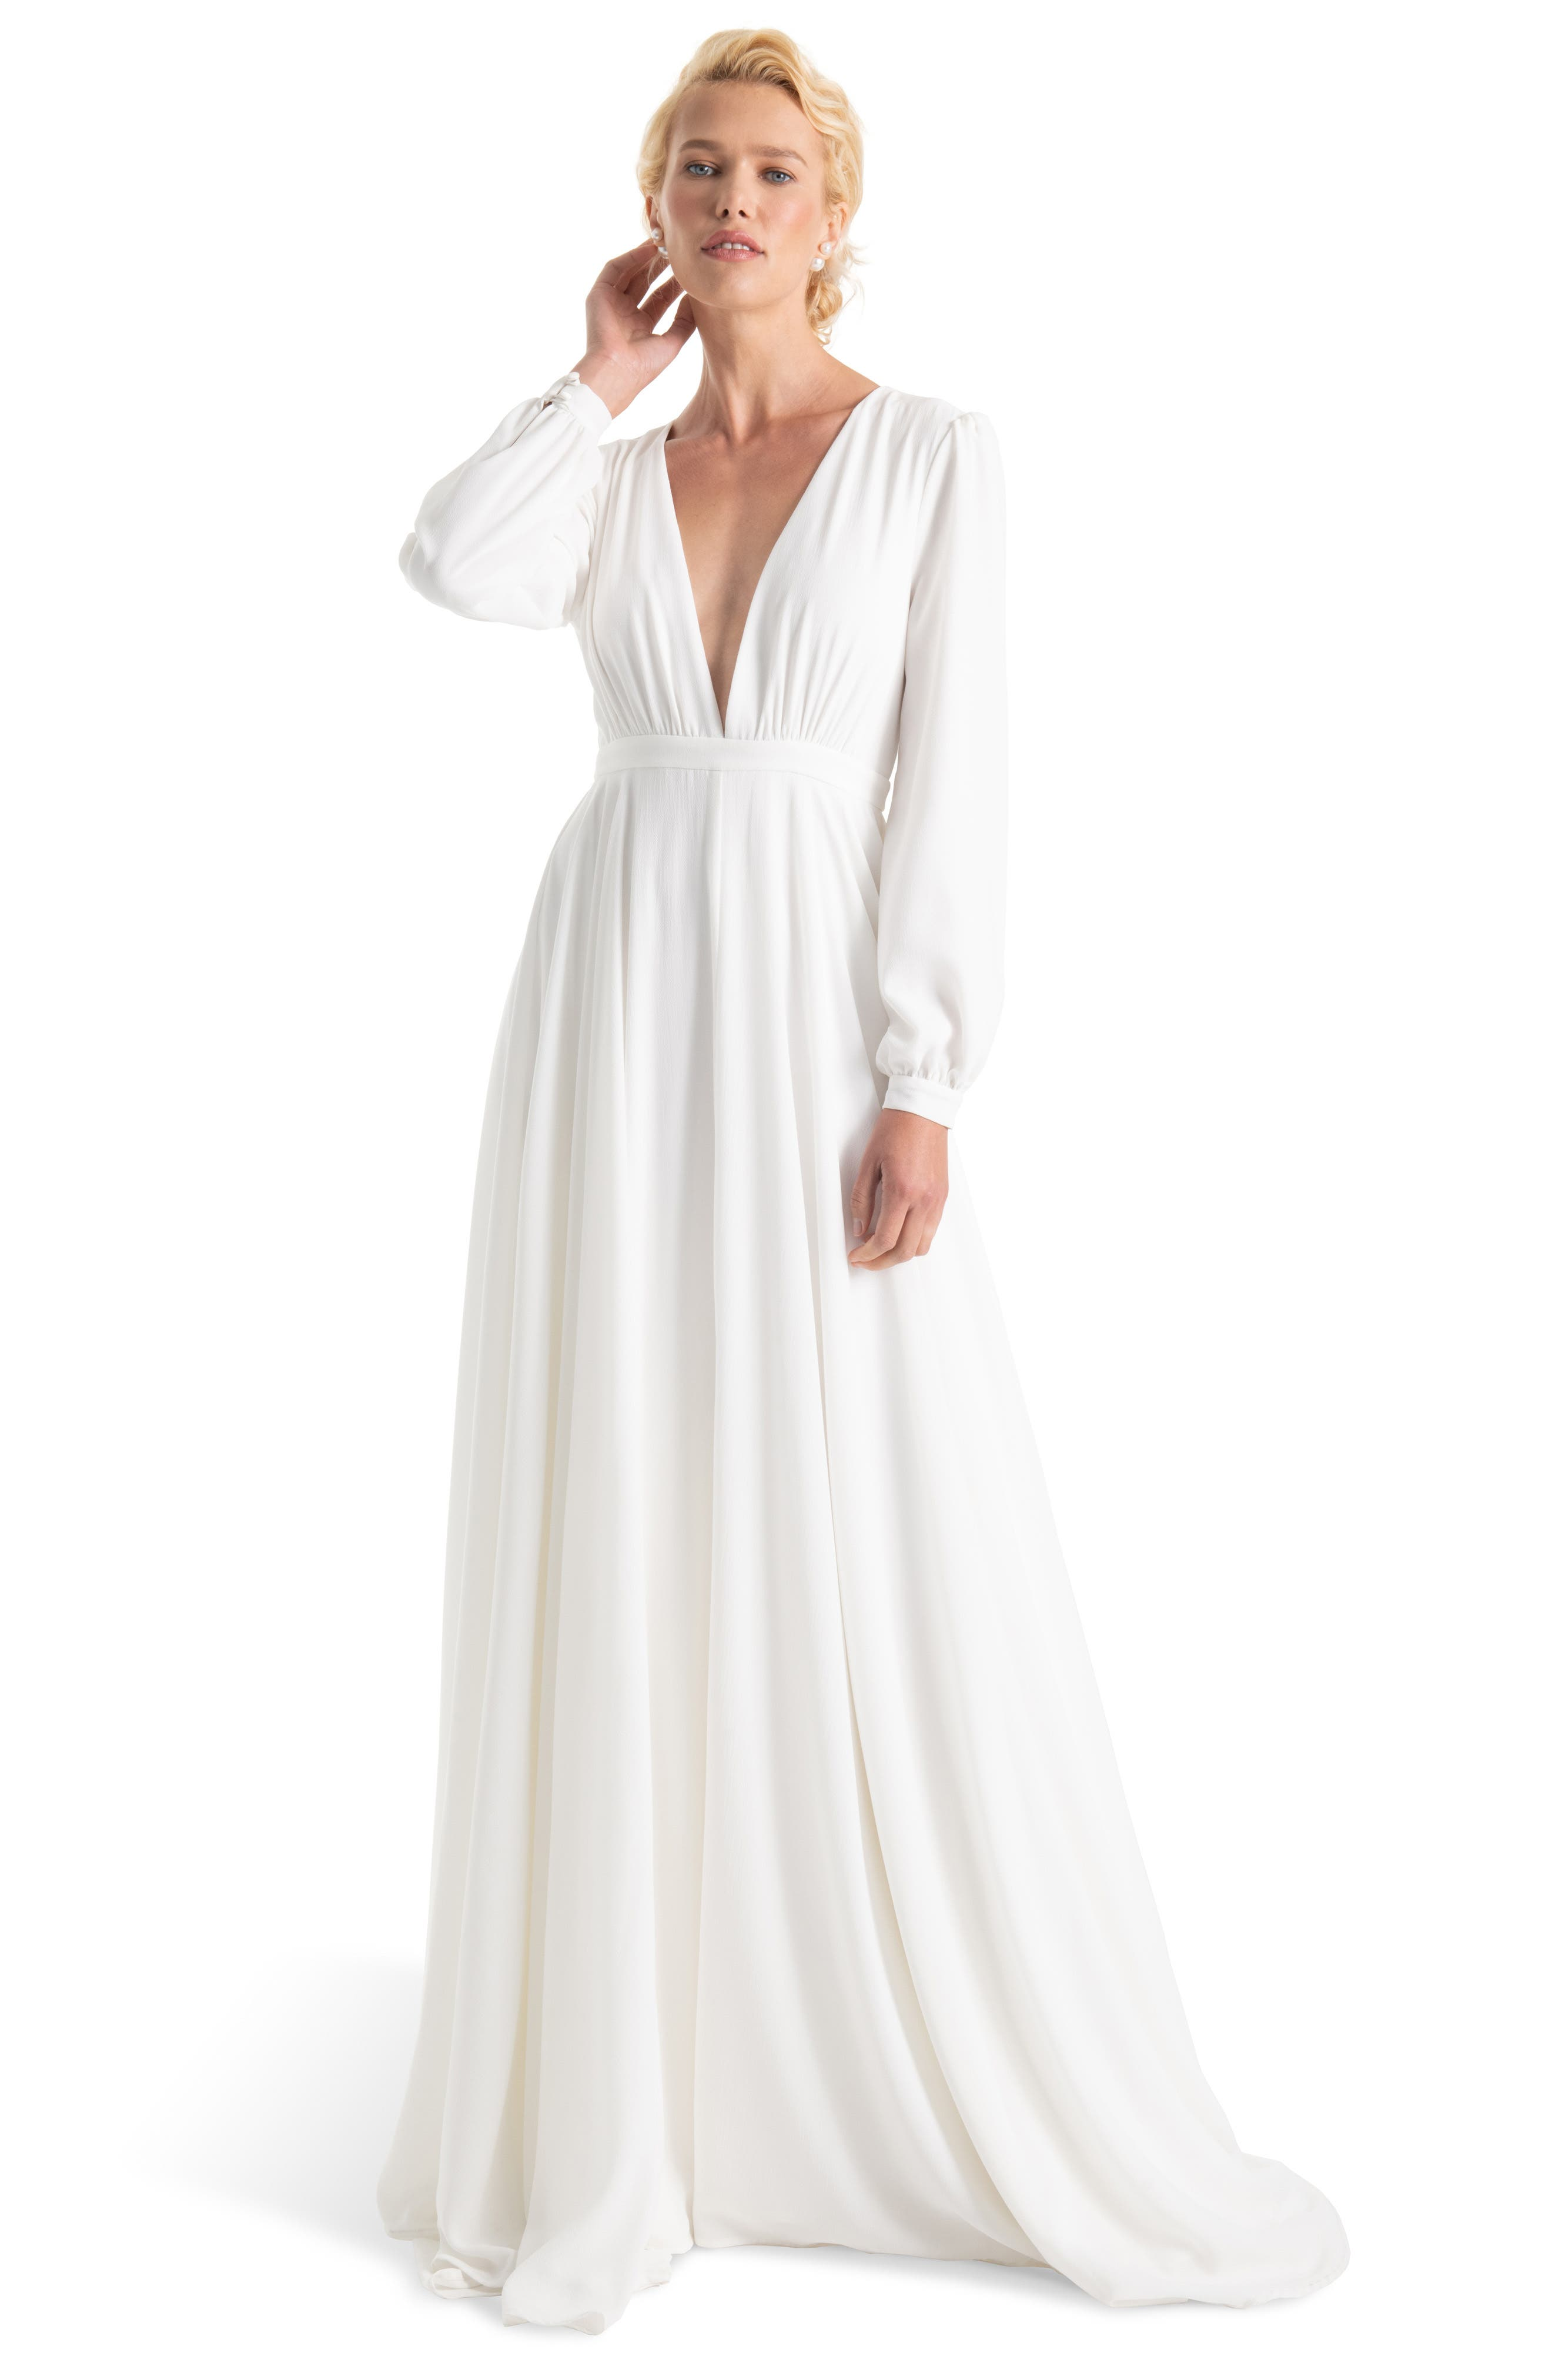 Search For Flights Ruched Chiffon Modest Wedding Dresses 2019 With Cap Sleeves V Neck Long Informal Beach Reception Bridal Gowns Custom Made New Weddings & Events